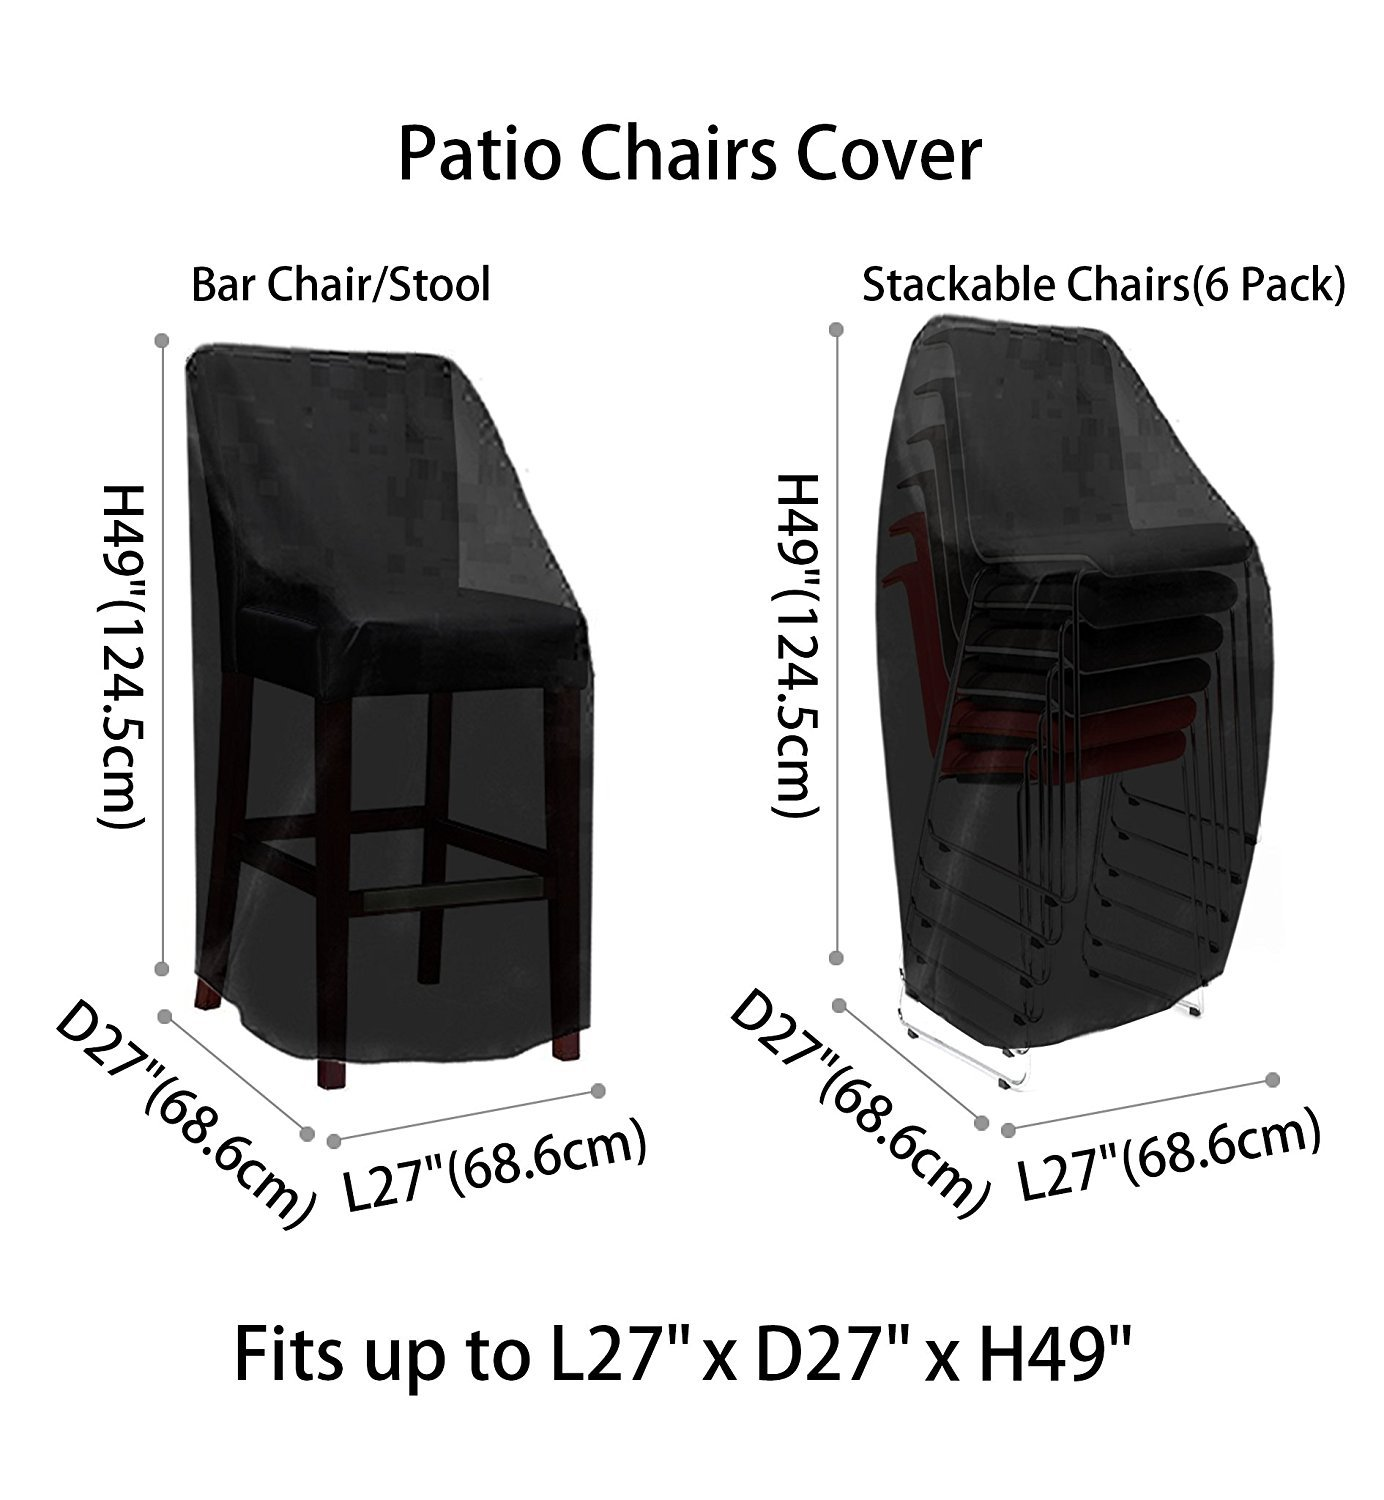 L100.100 x D100.100 x H100.100 inch, 10 Pack Patio Chair Covers Waterproof